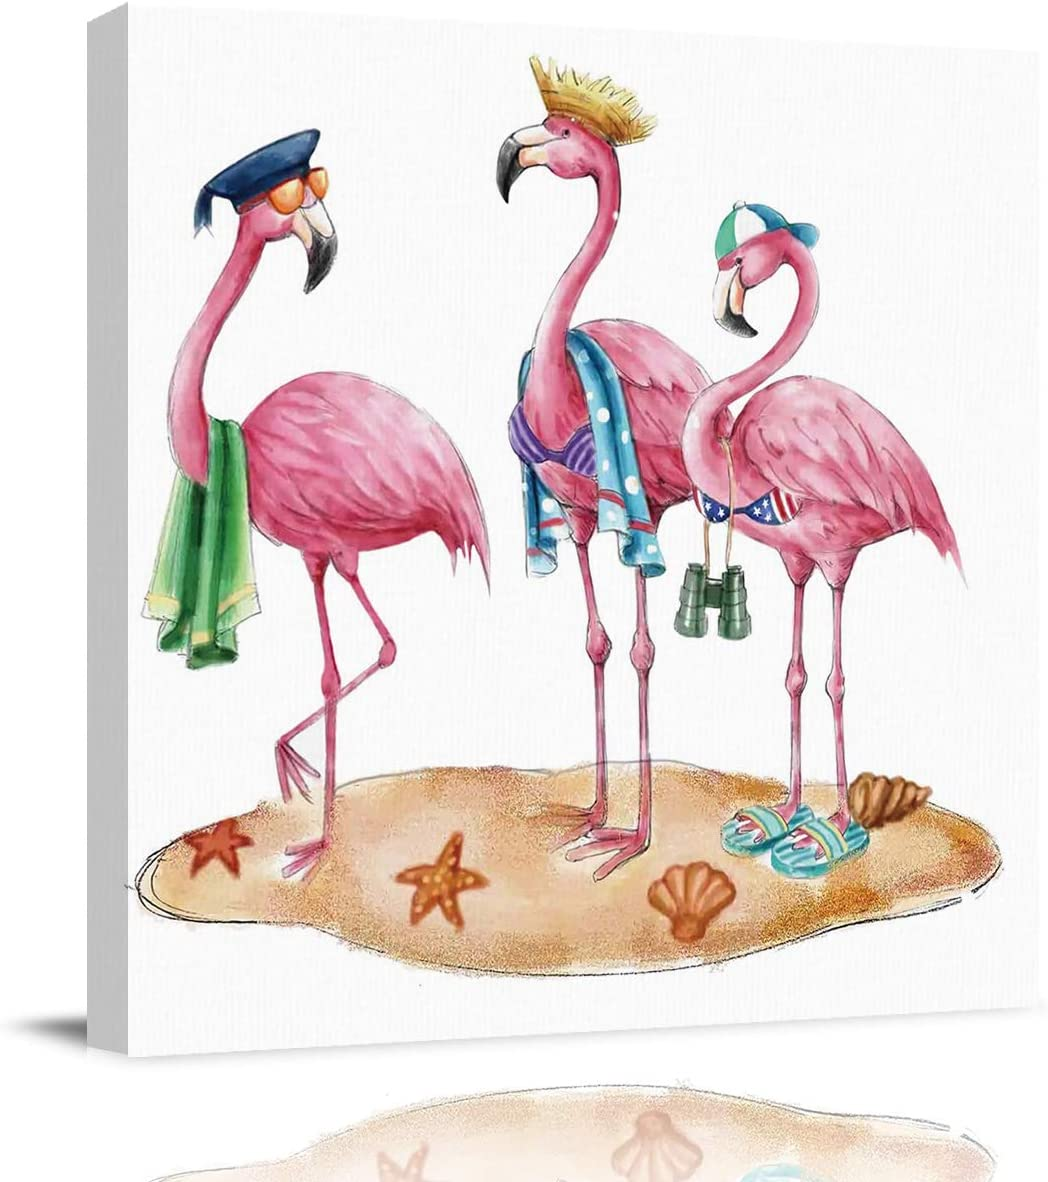 Wall Decor Framed Canvas Art Prints Funny Cartoon Flamingo with Hat on Beach Pictures Posters Modern Artwork Paintings Home Wall Decoration for Bedroom Living Room 12